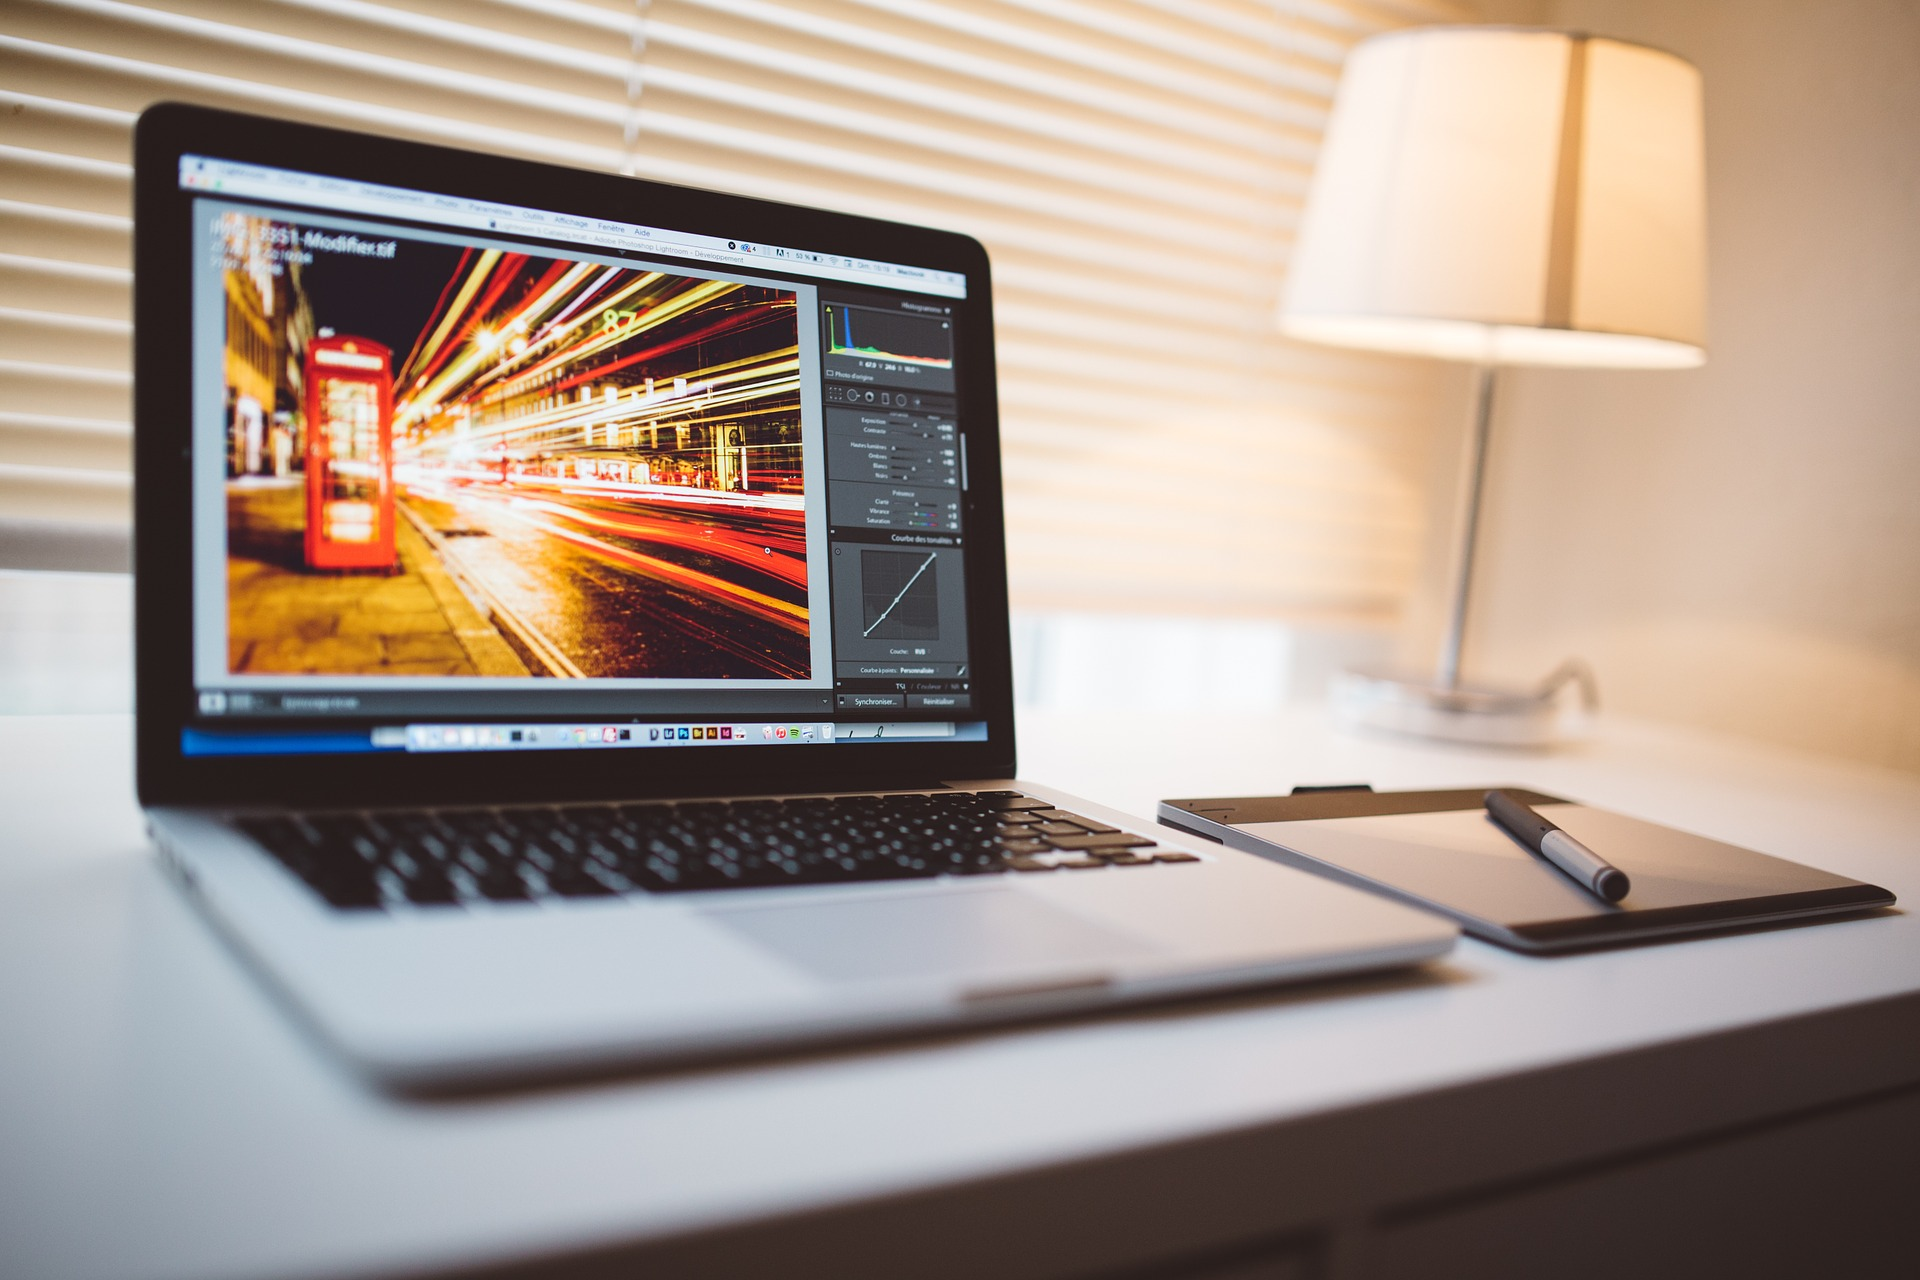 Photoshop open on a MacBook